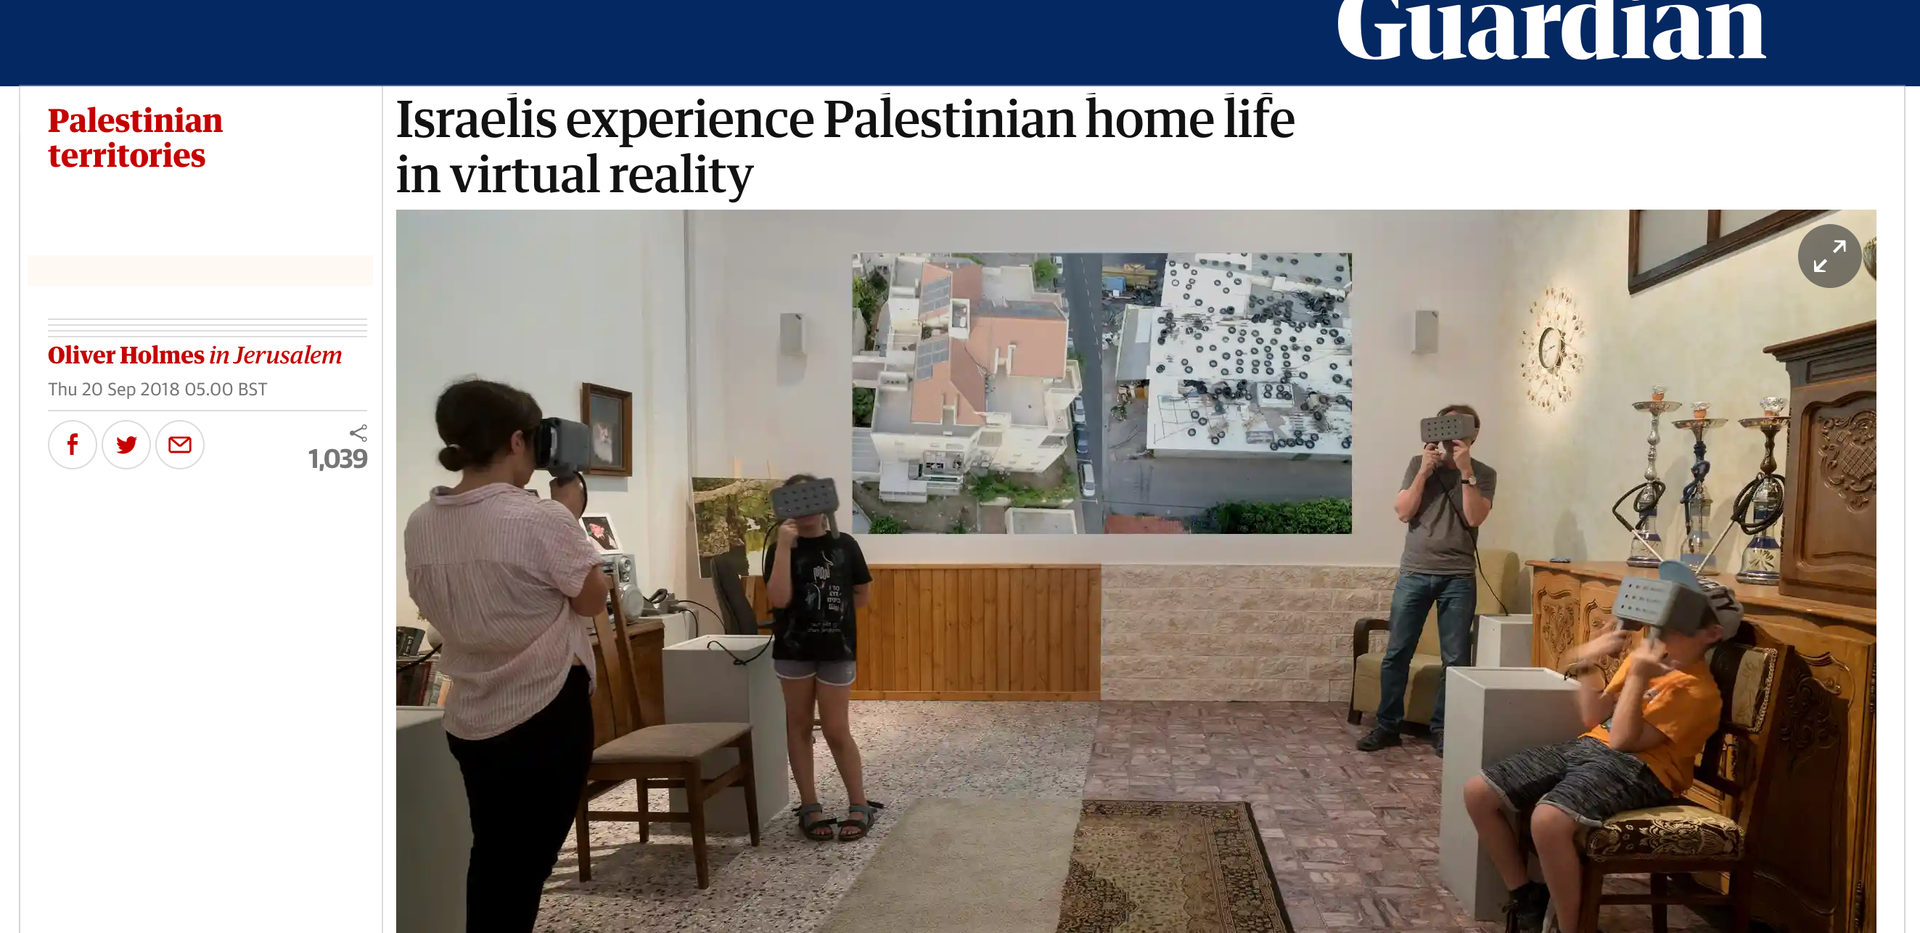 The Guardian, September 20, 2018